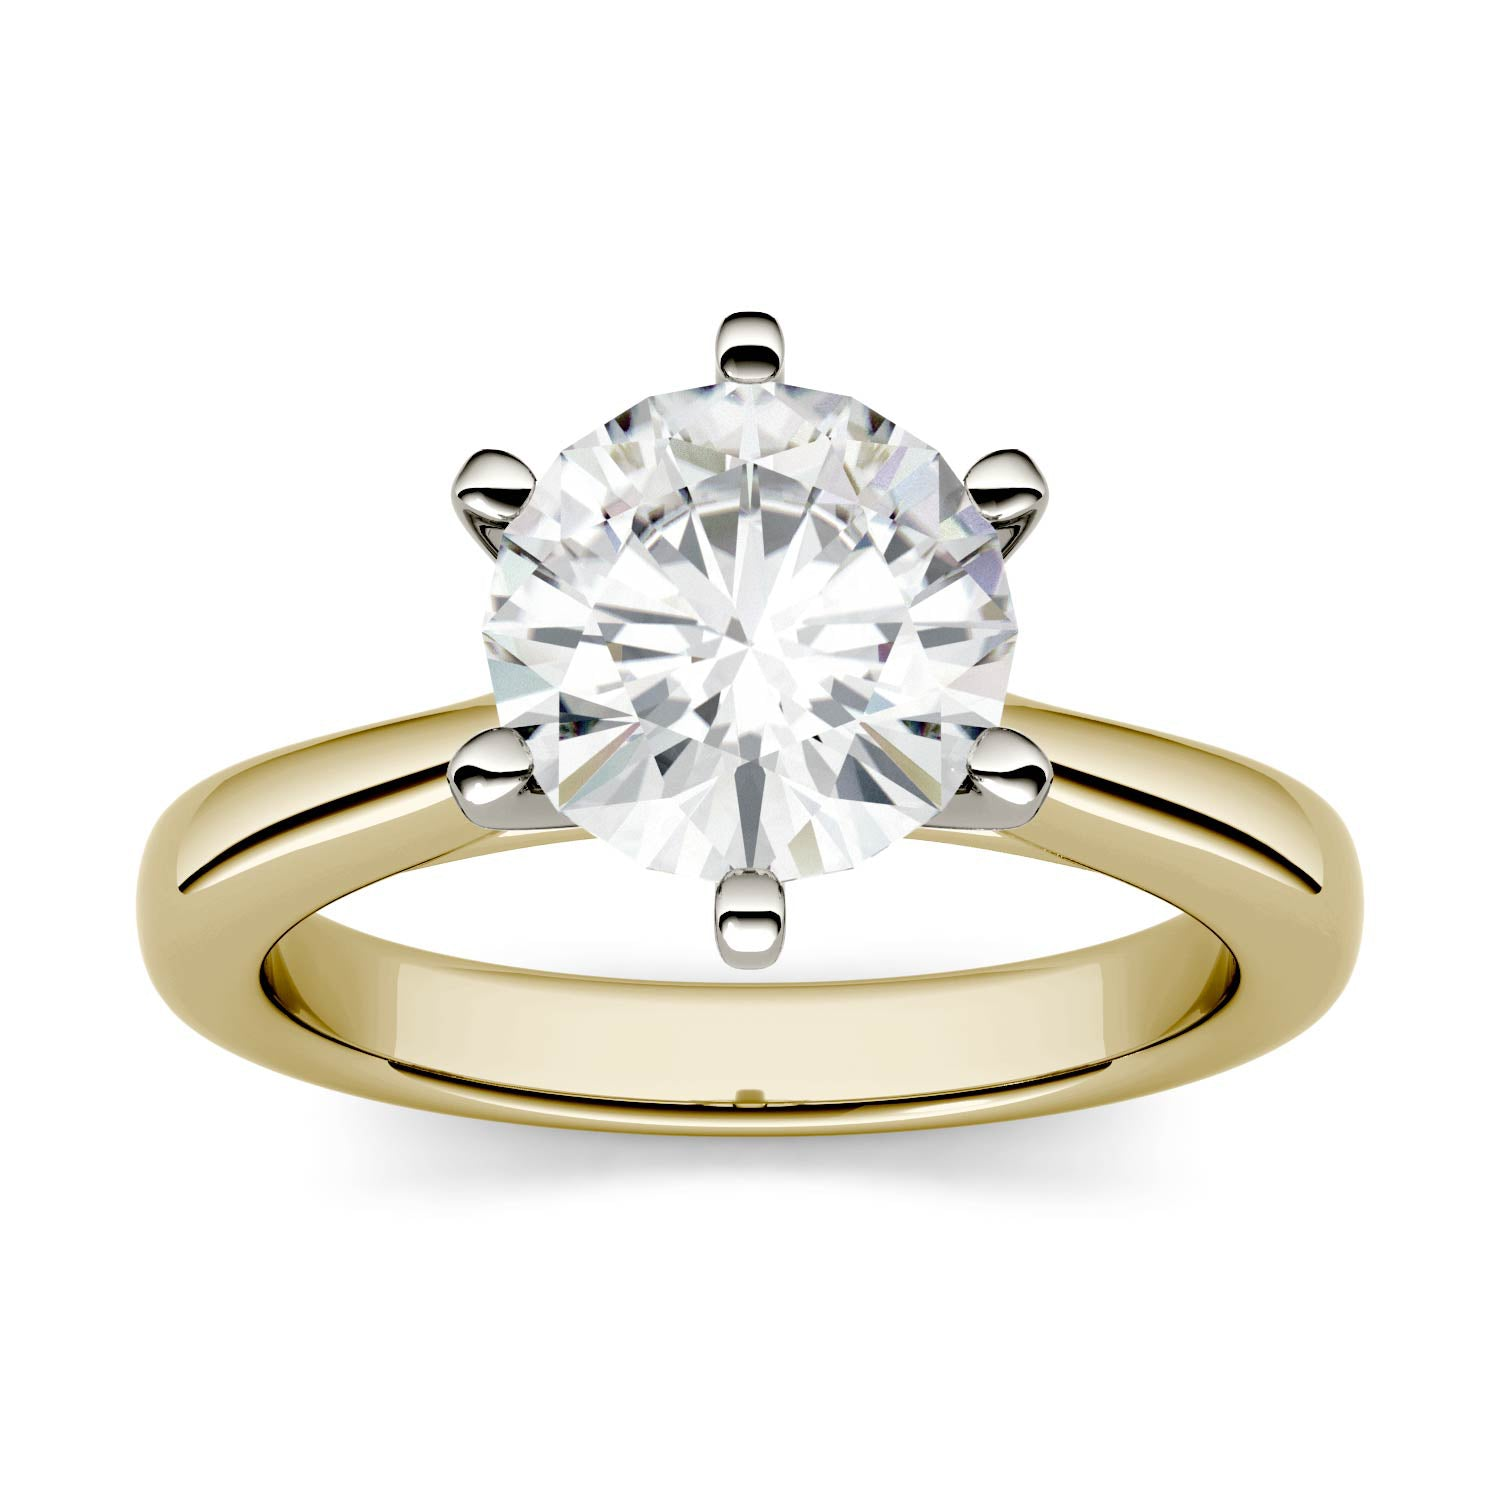 Charles & Colvard Moissanite Solitaire Engagement Ring in Two-tone Gold-612273 - Jewelry by Johan